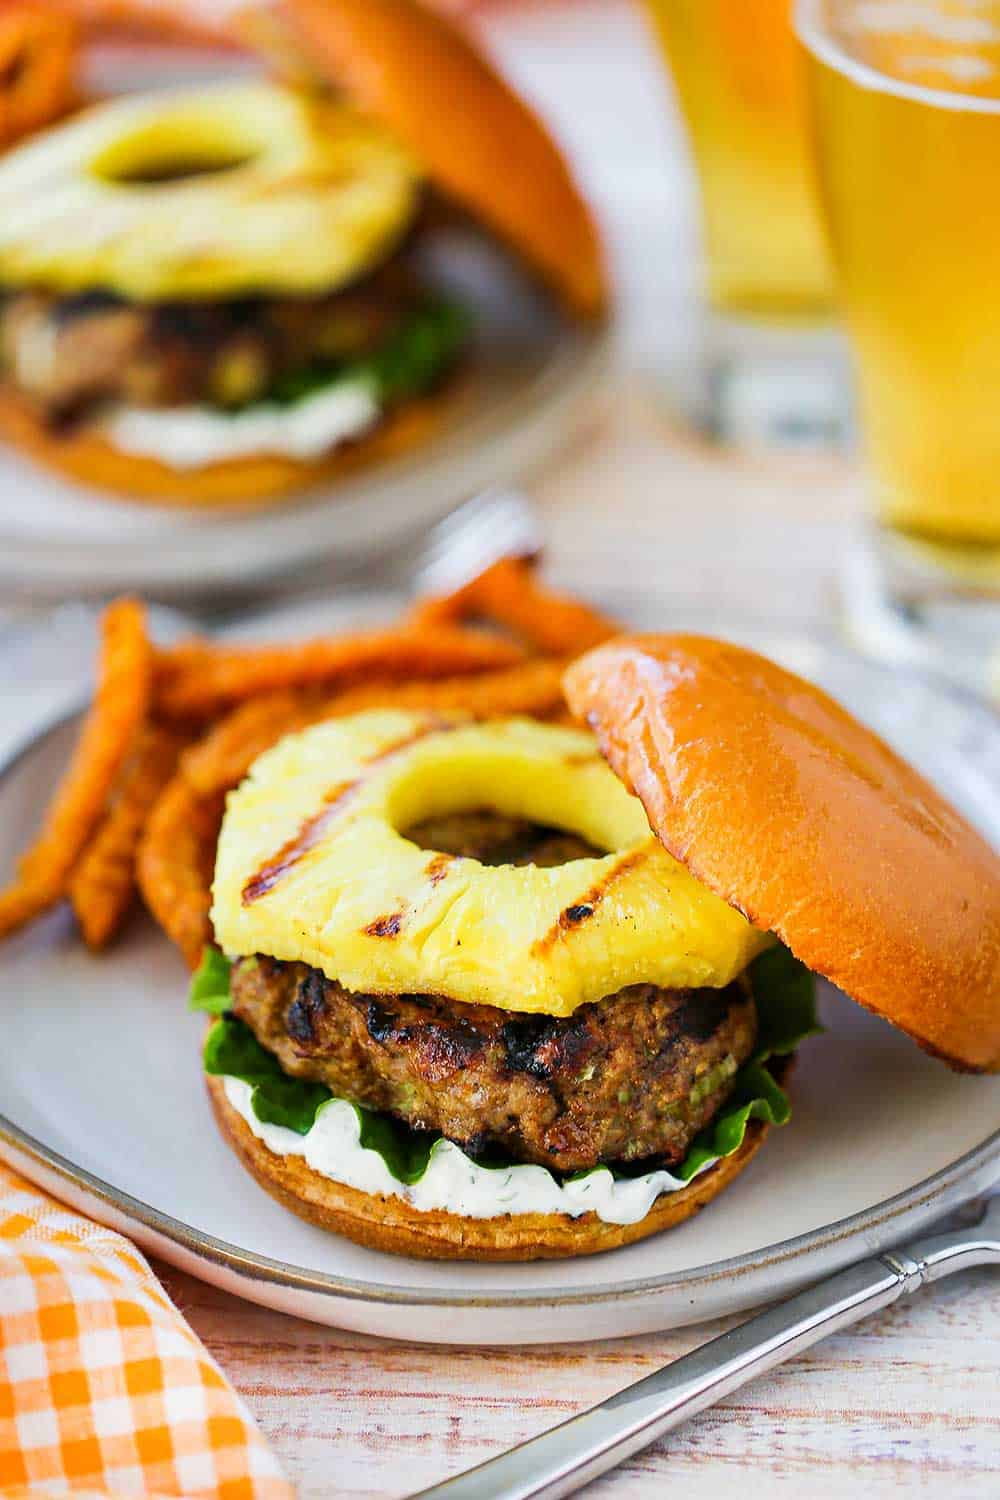 A curry turkey burger with grilled pineapple sitting on a plate next to sweet potato crinkle fries with a couple glasses of beer in the background.